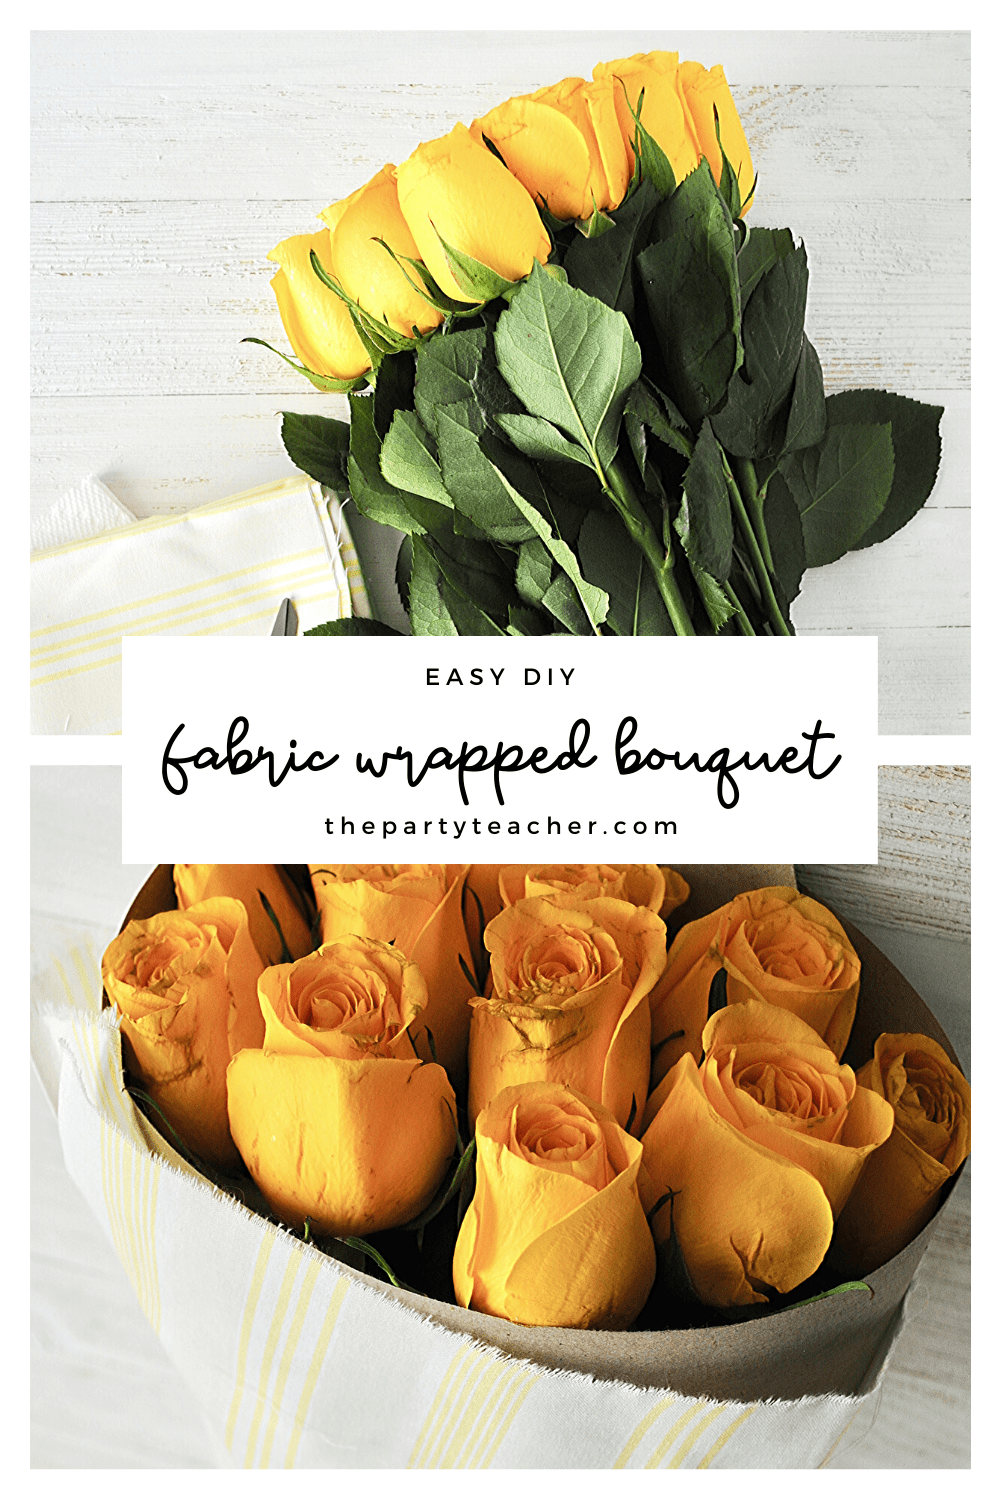 Easy DIY - how to wrap bouquet in fabric - The Party Teacher